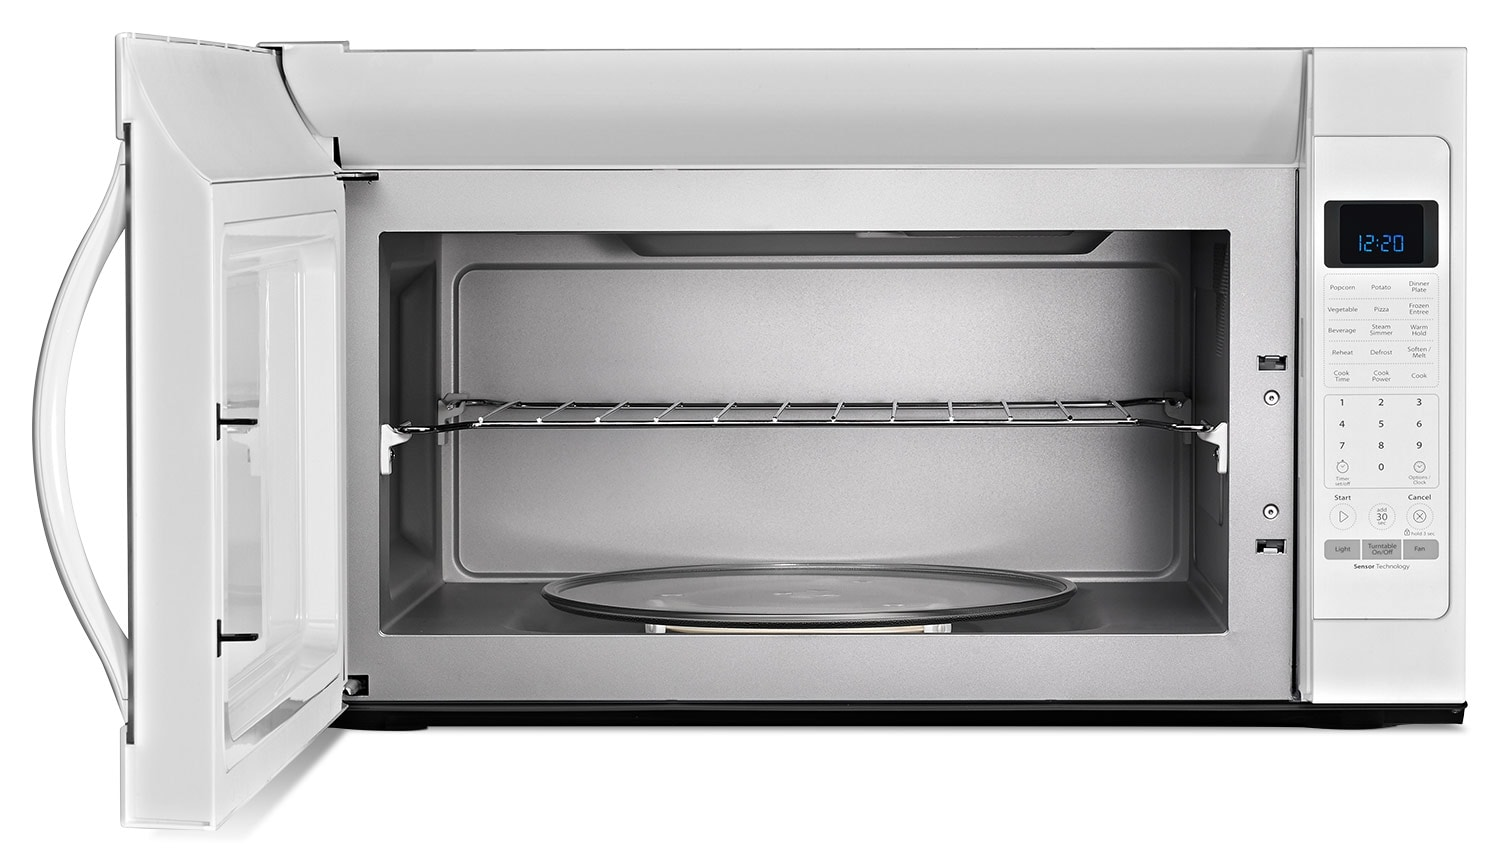 Whirlpool white ice microwave dimensions - Click To Change Image Whirlpool